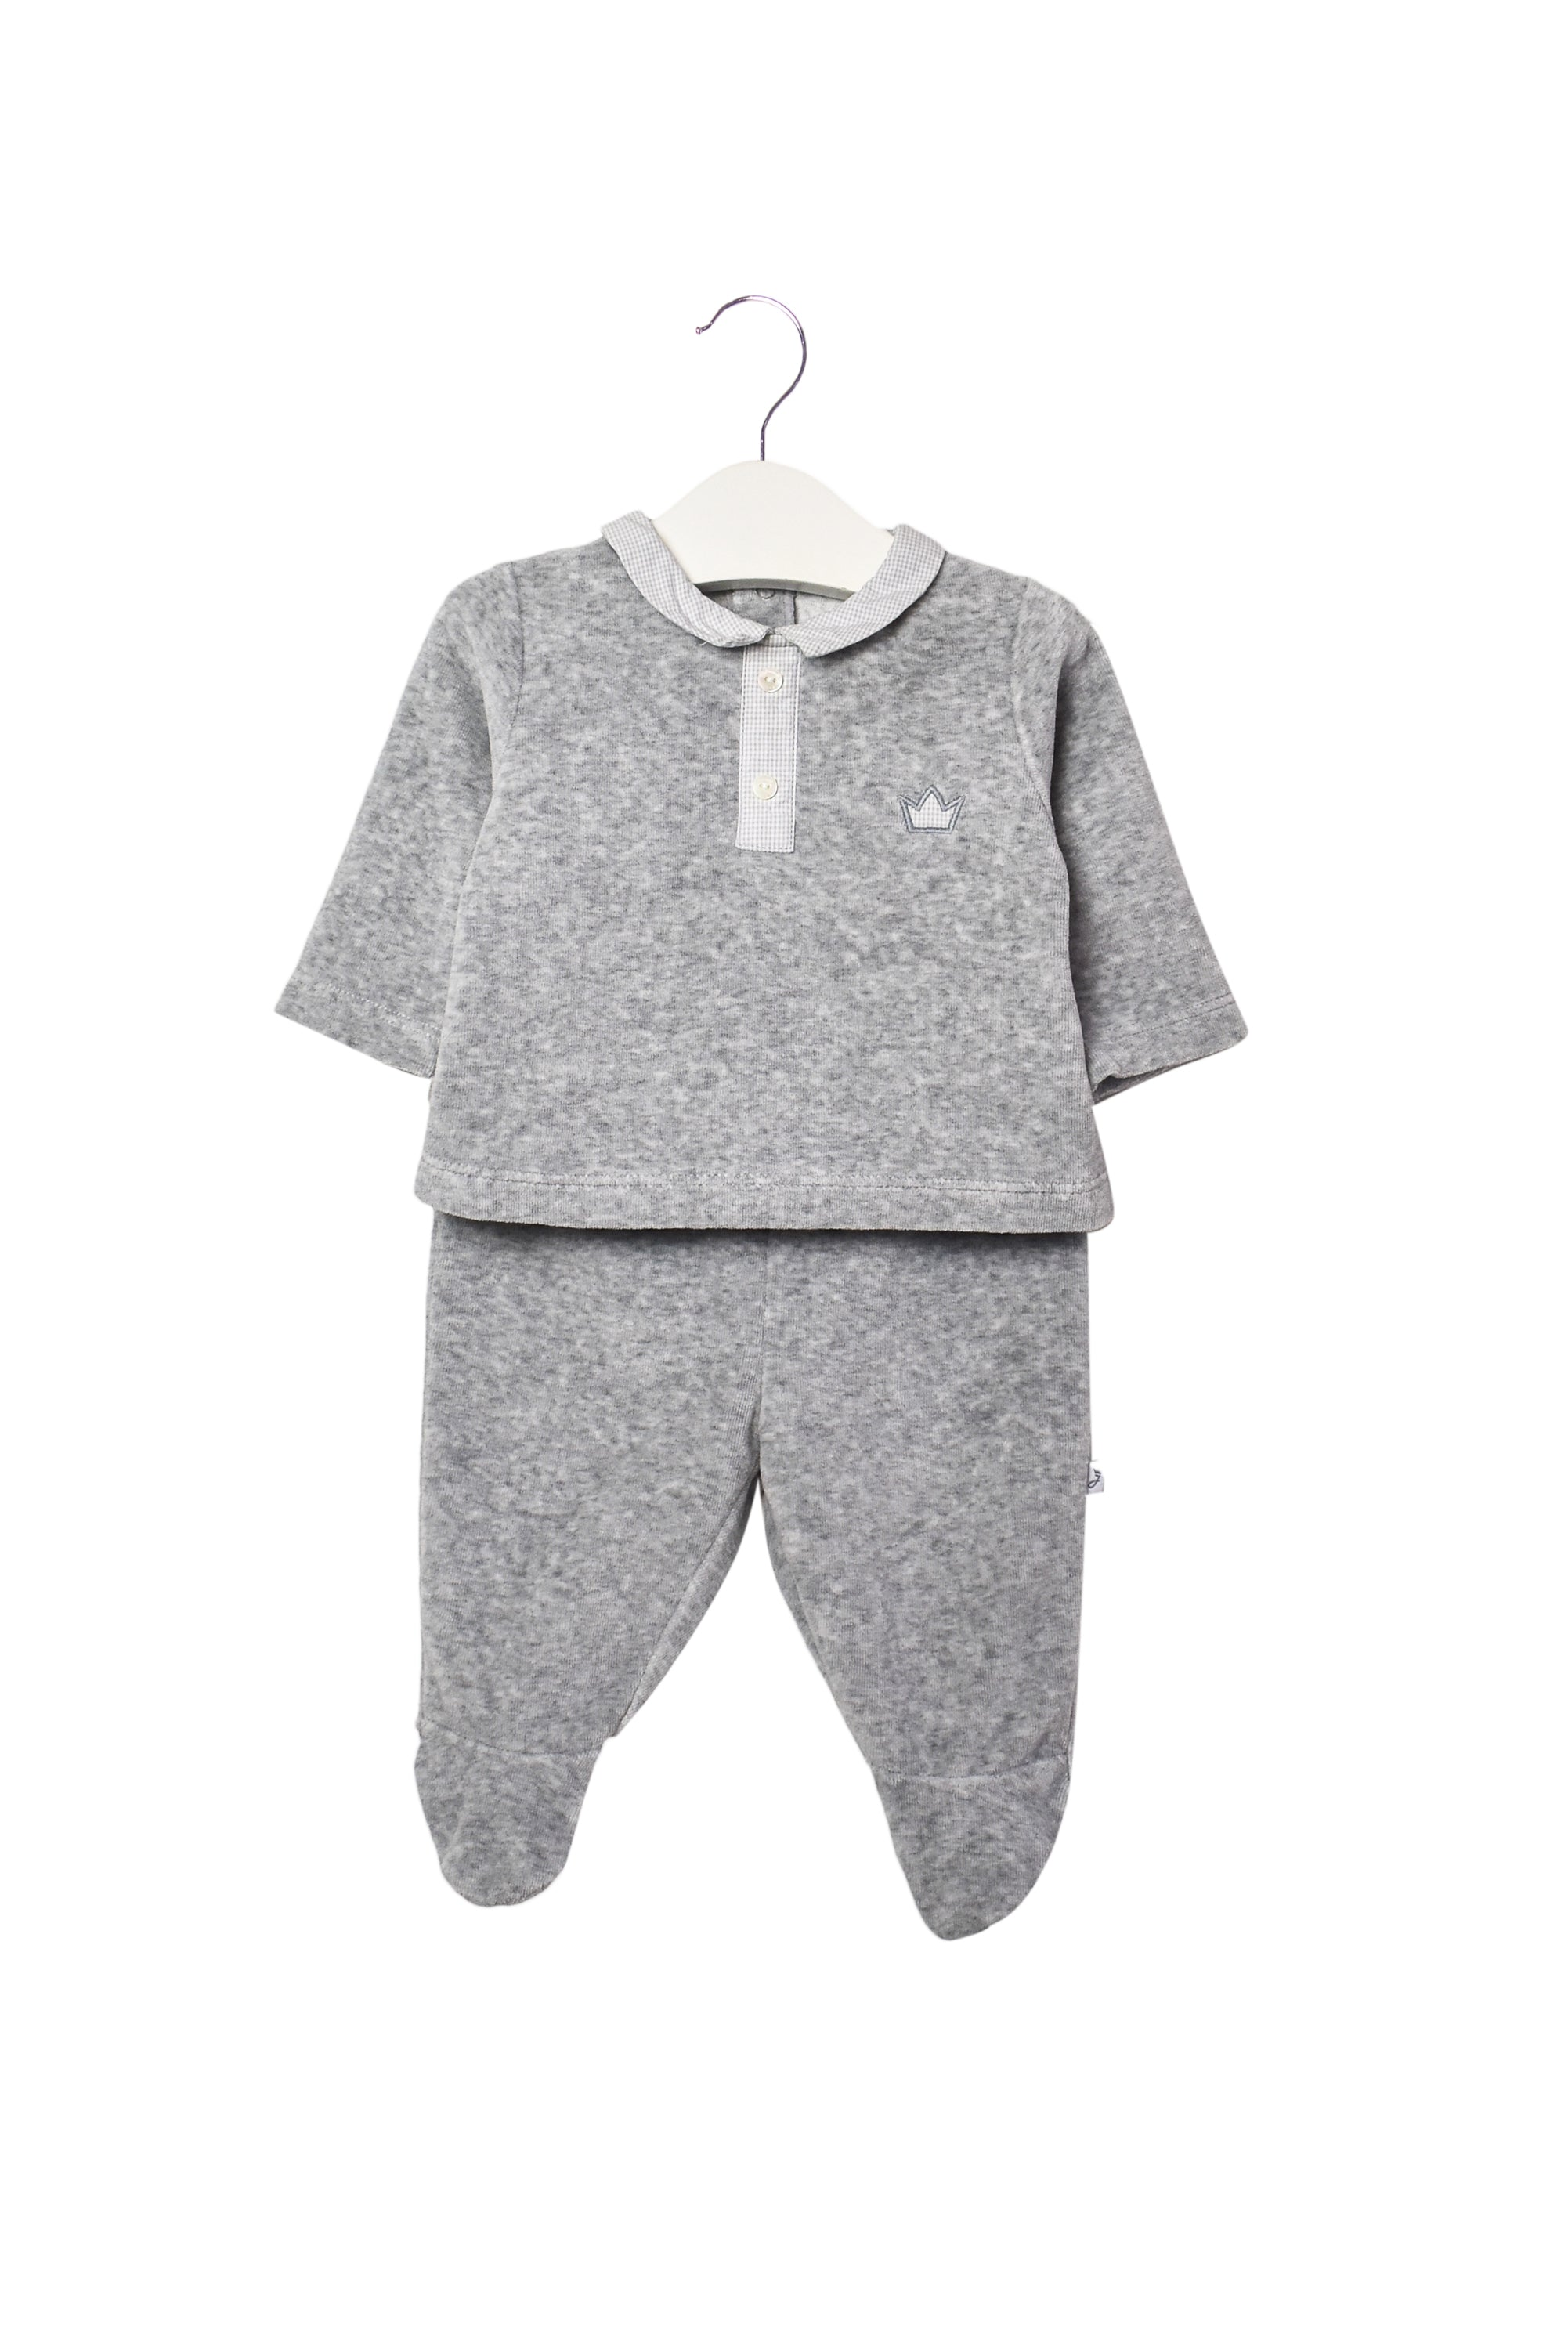 10008563 Jacadi Baby ~ Top and Pants Set 3M at Retykle